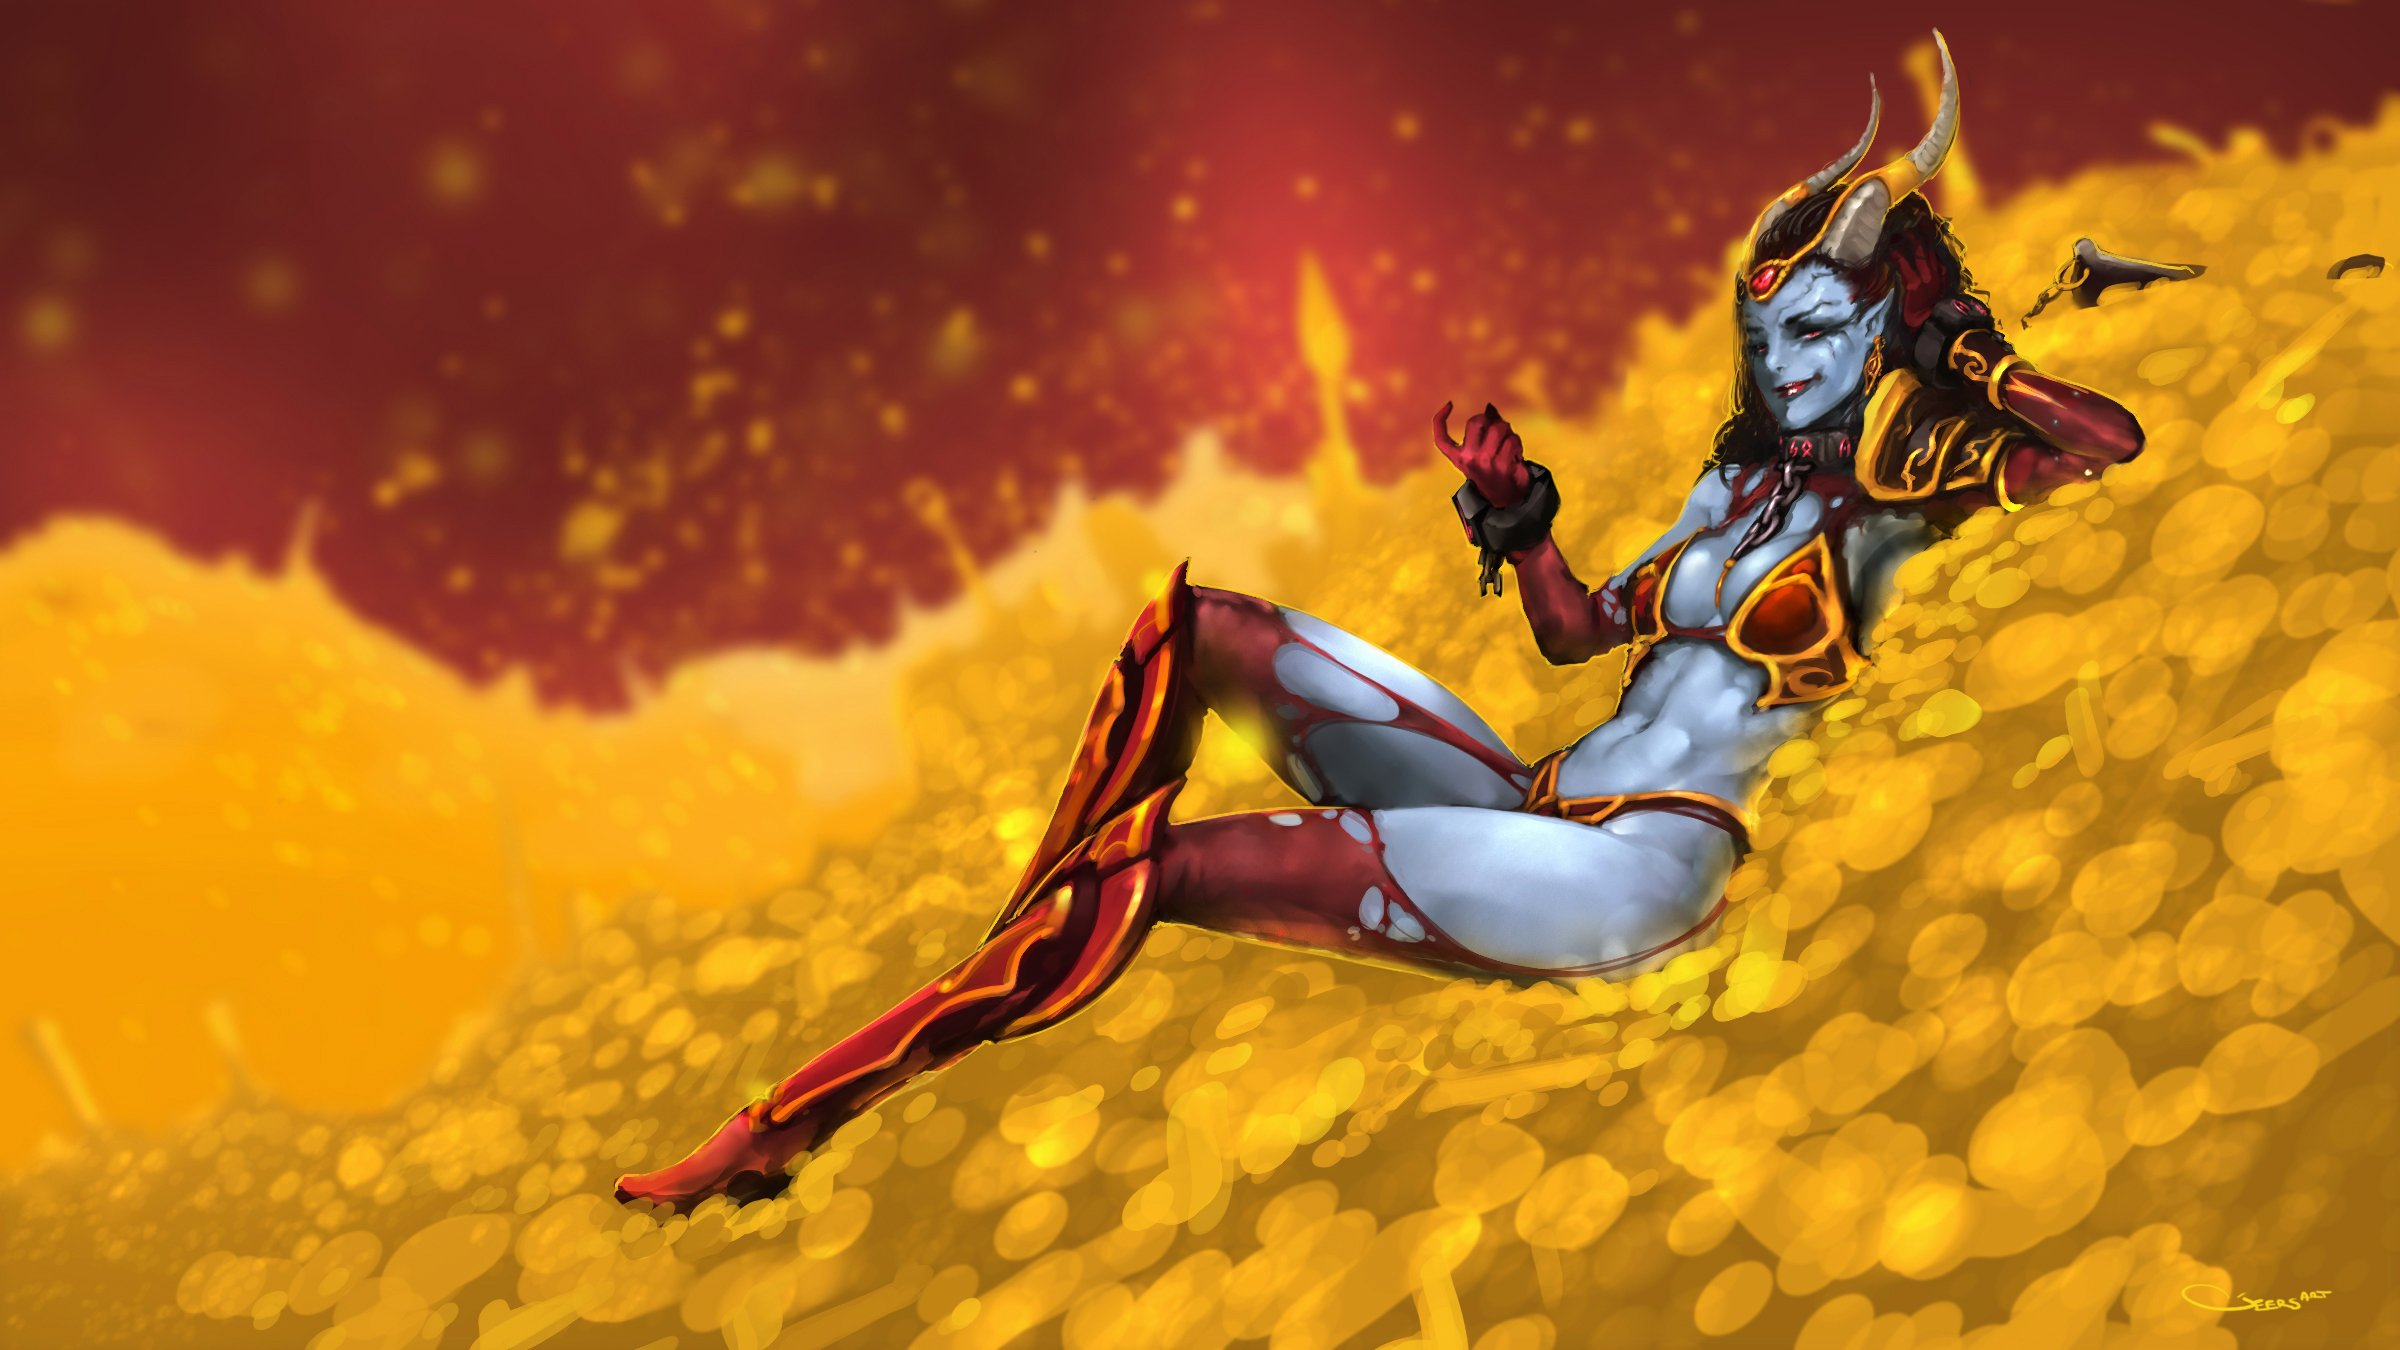 Queen of Pain Квопа in Gold pc wallpaper Dota 2